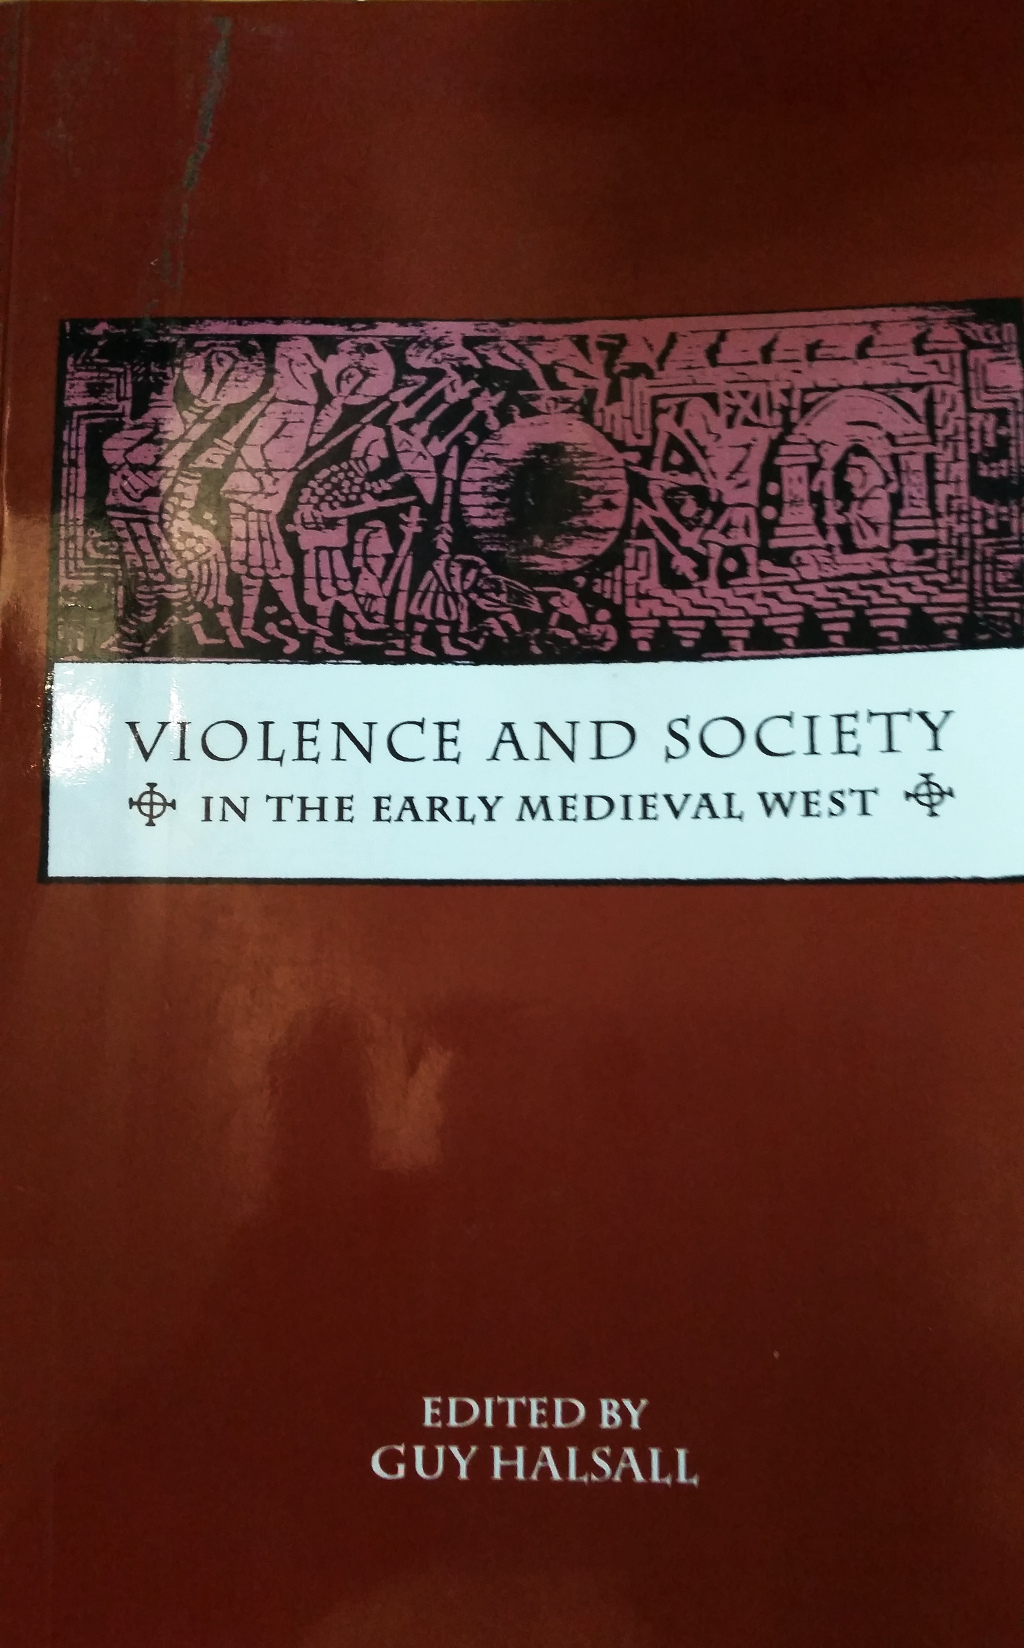 Neu in der Bibliothek: Violence and Society in the Early Medieval West